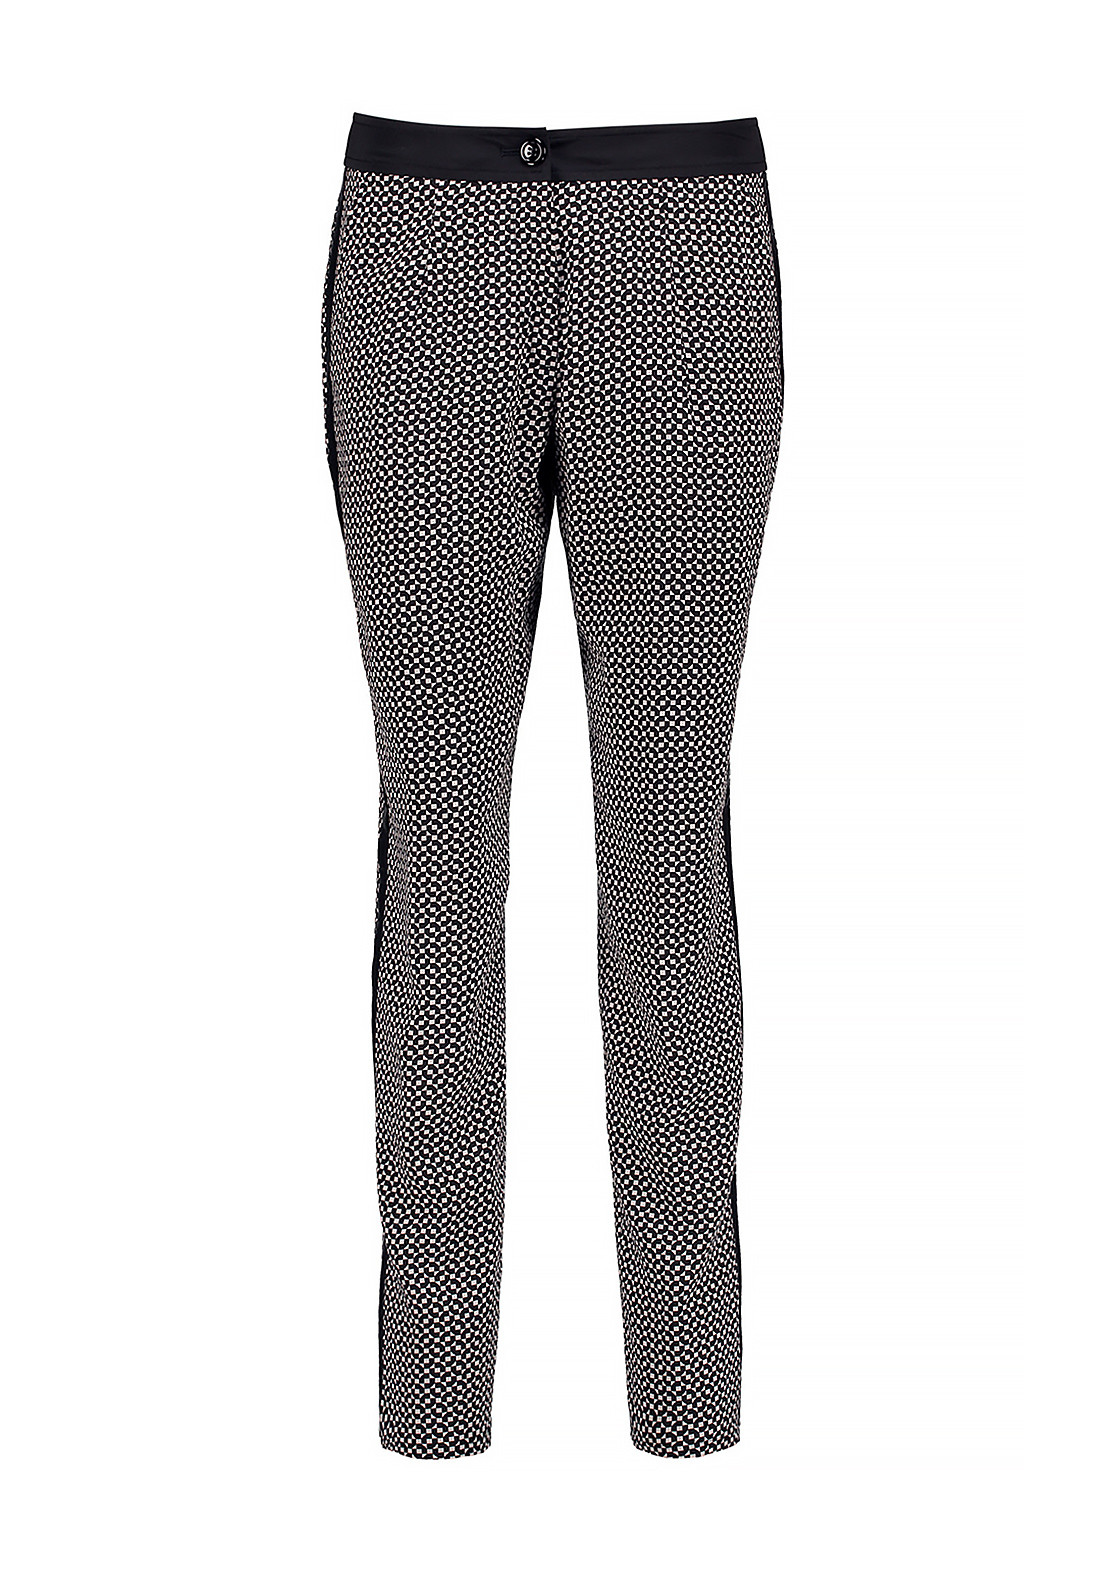 Gerry Weber Patterned Trousers, Black and Cream